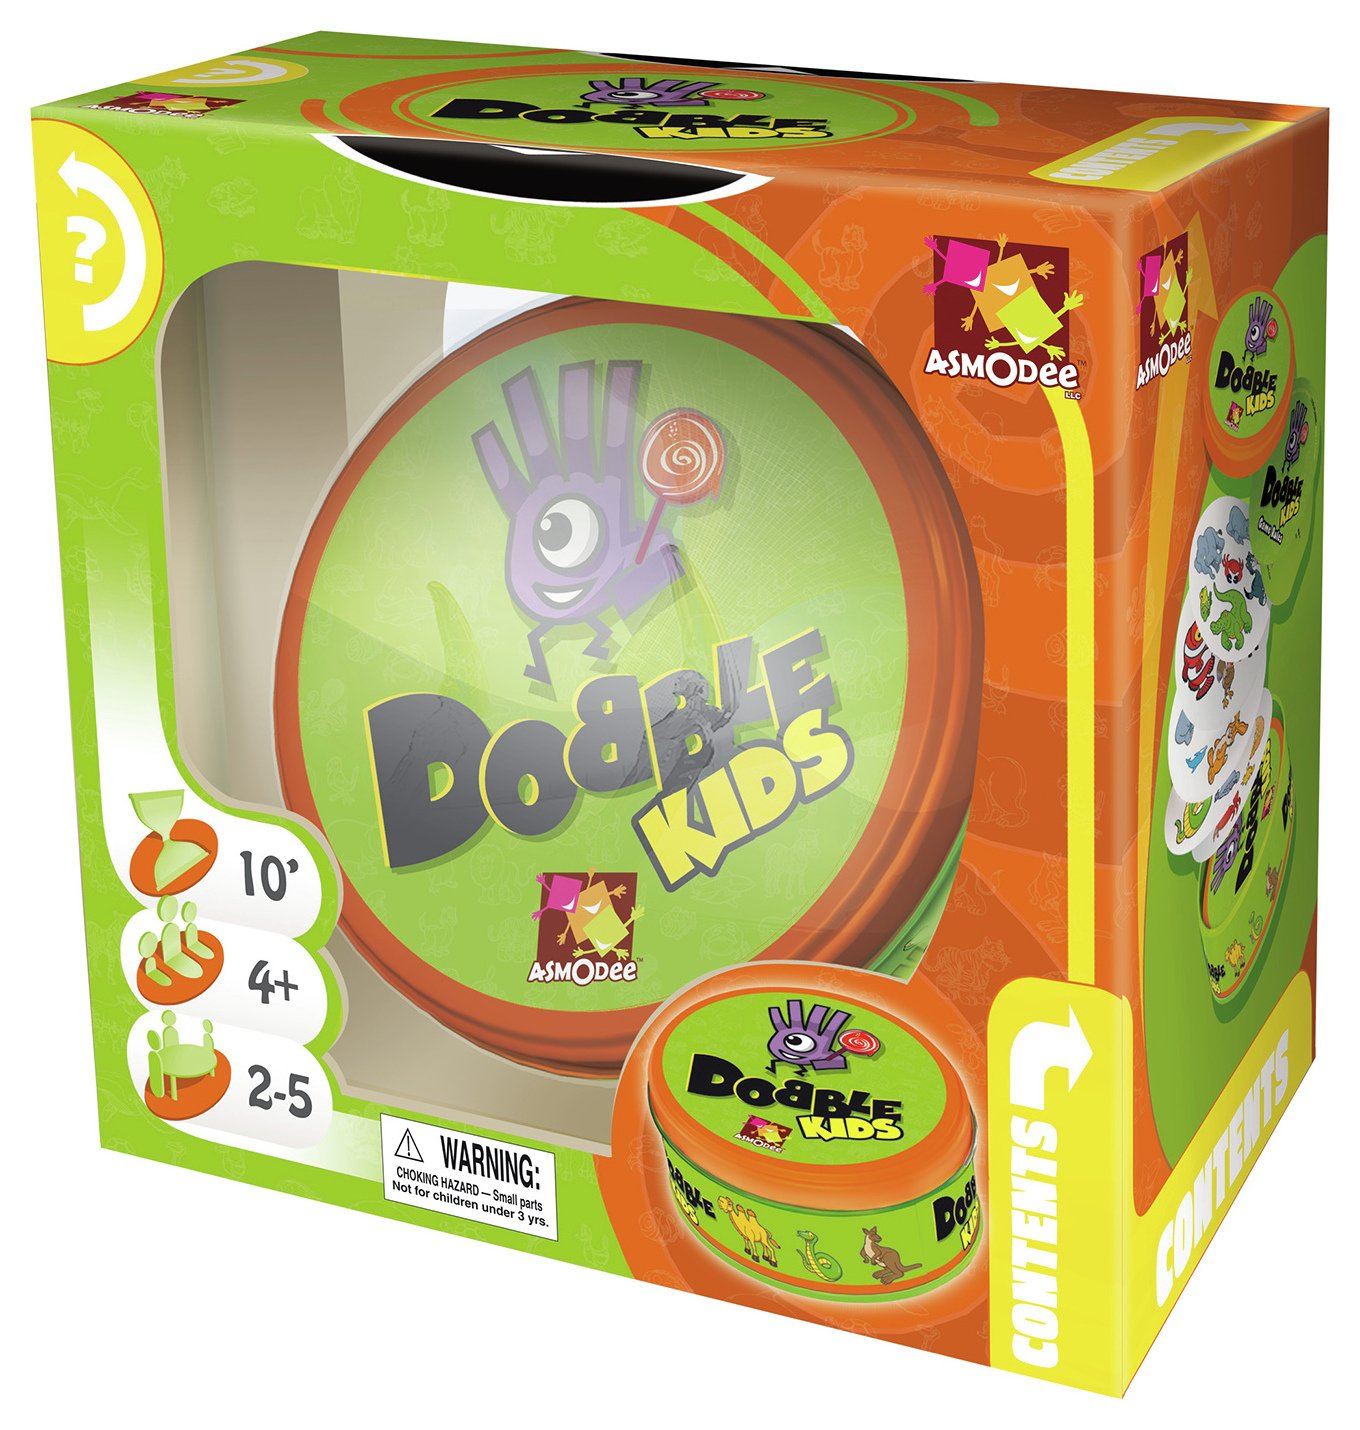 Image of Asmodee Dobble Kids Game